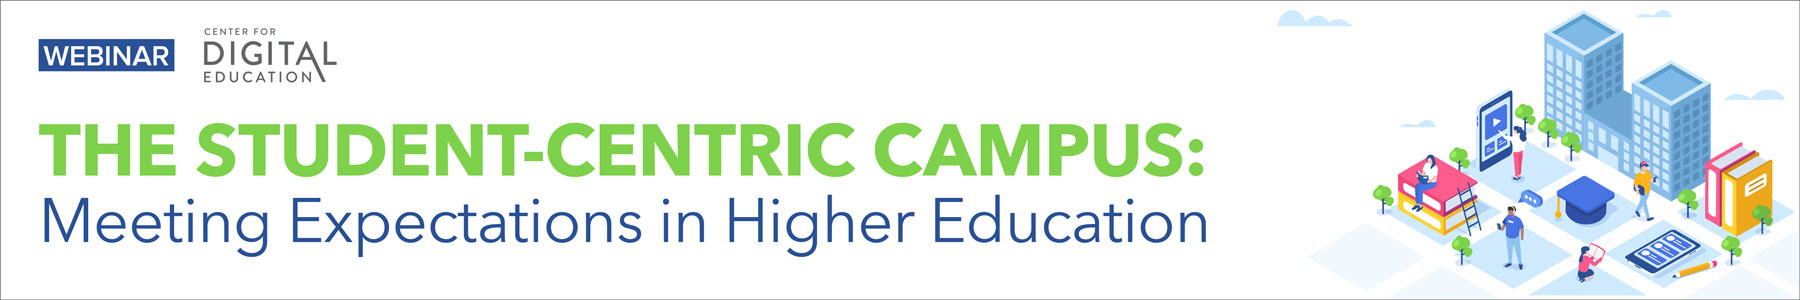 The Student-Centric Campus: Meeting Expectations in Higher Education